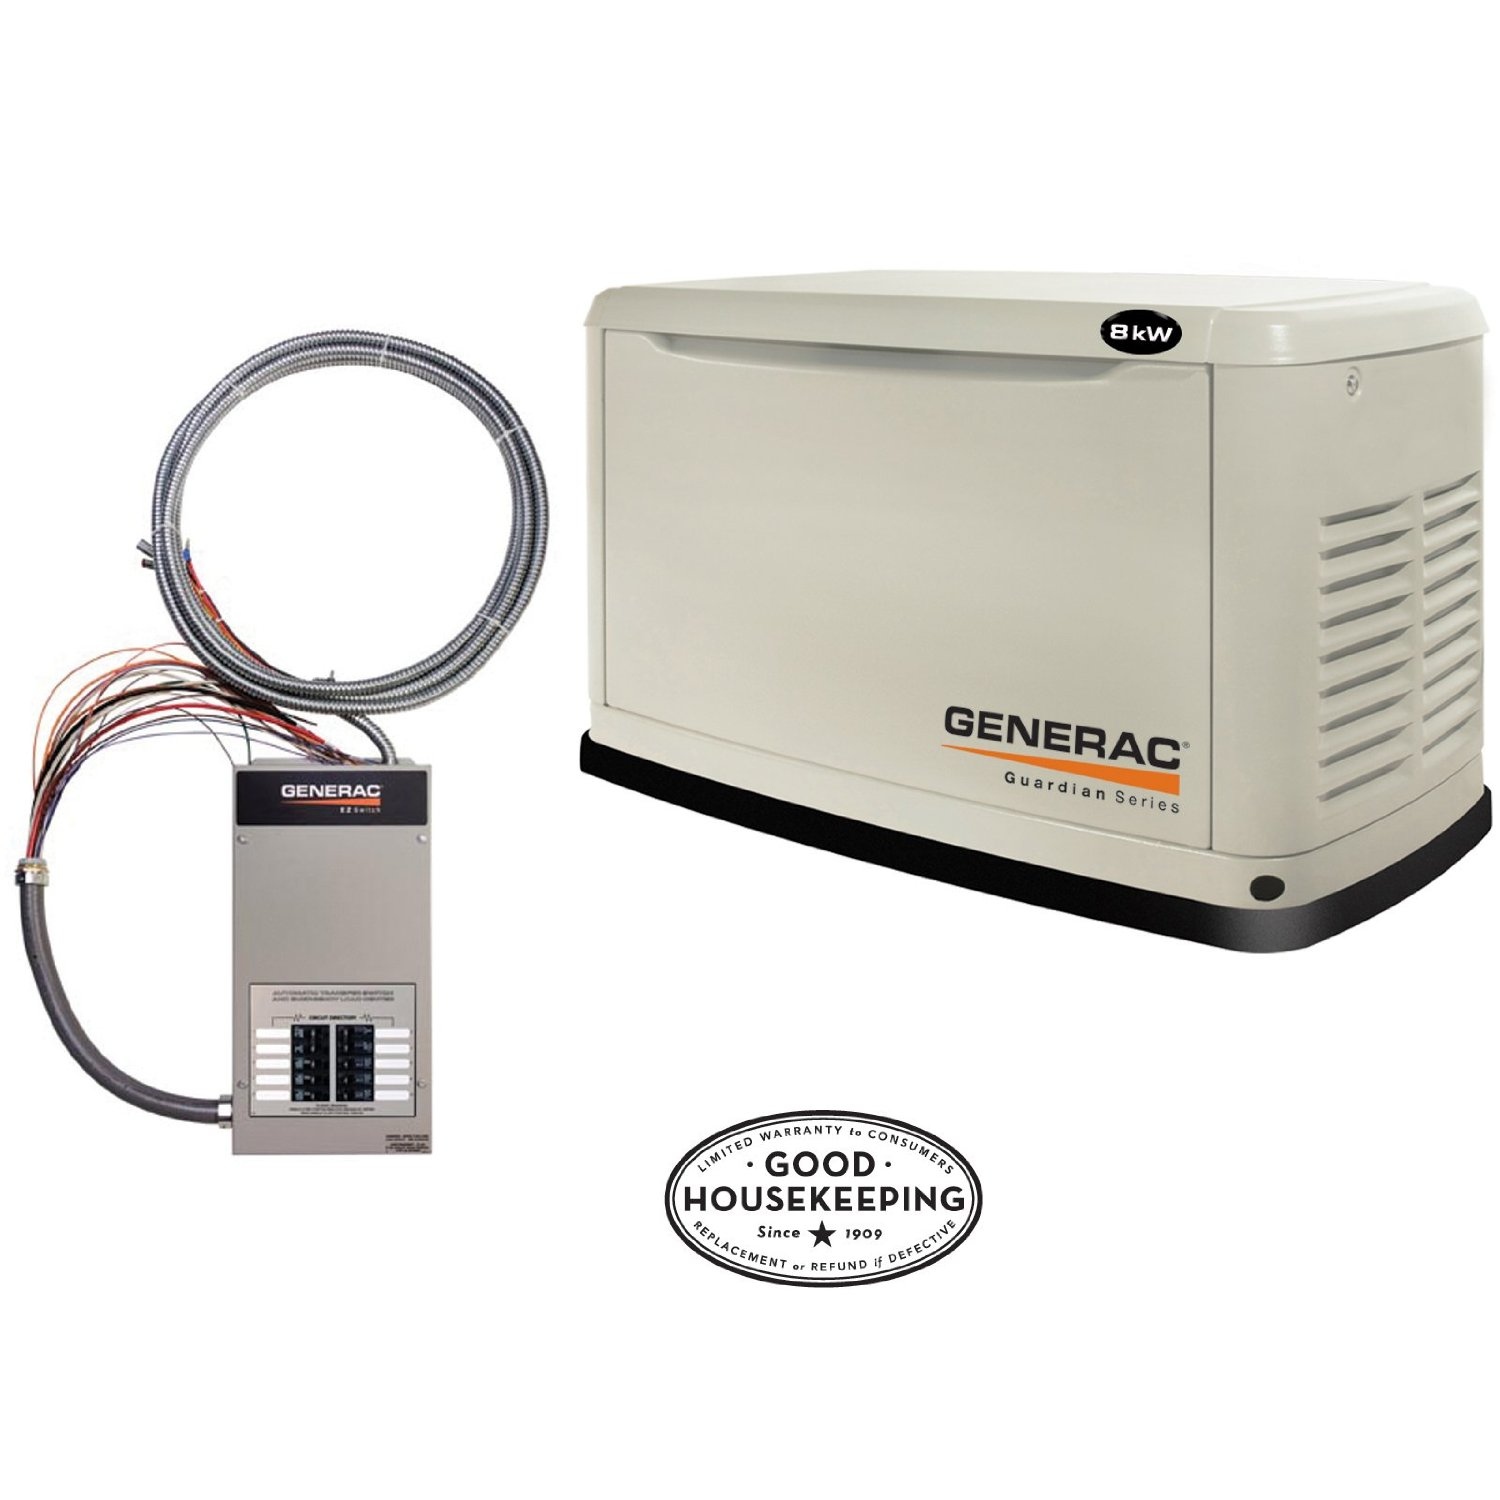 Generac Guardian Series 5870 8,000 Watt Air-Cooled Liquid Propane/Natural Gas Powered Standby Generator With Transfer Switch (Discontinued by Manufacturer)